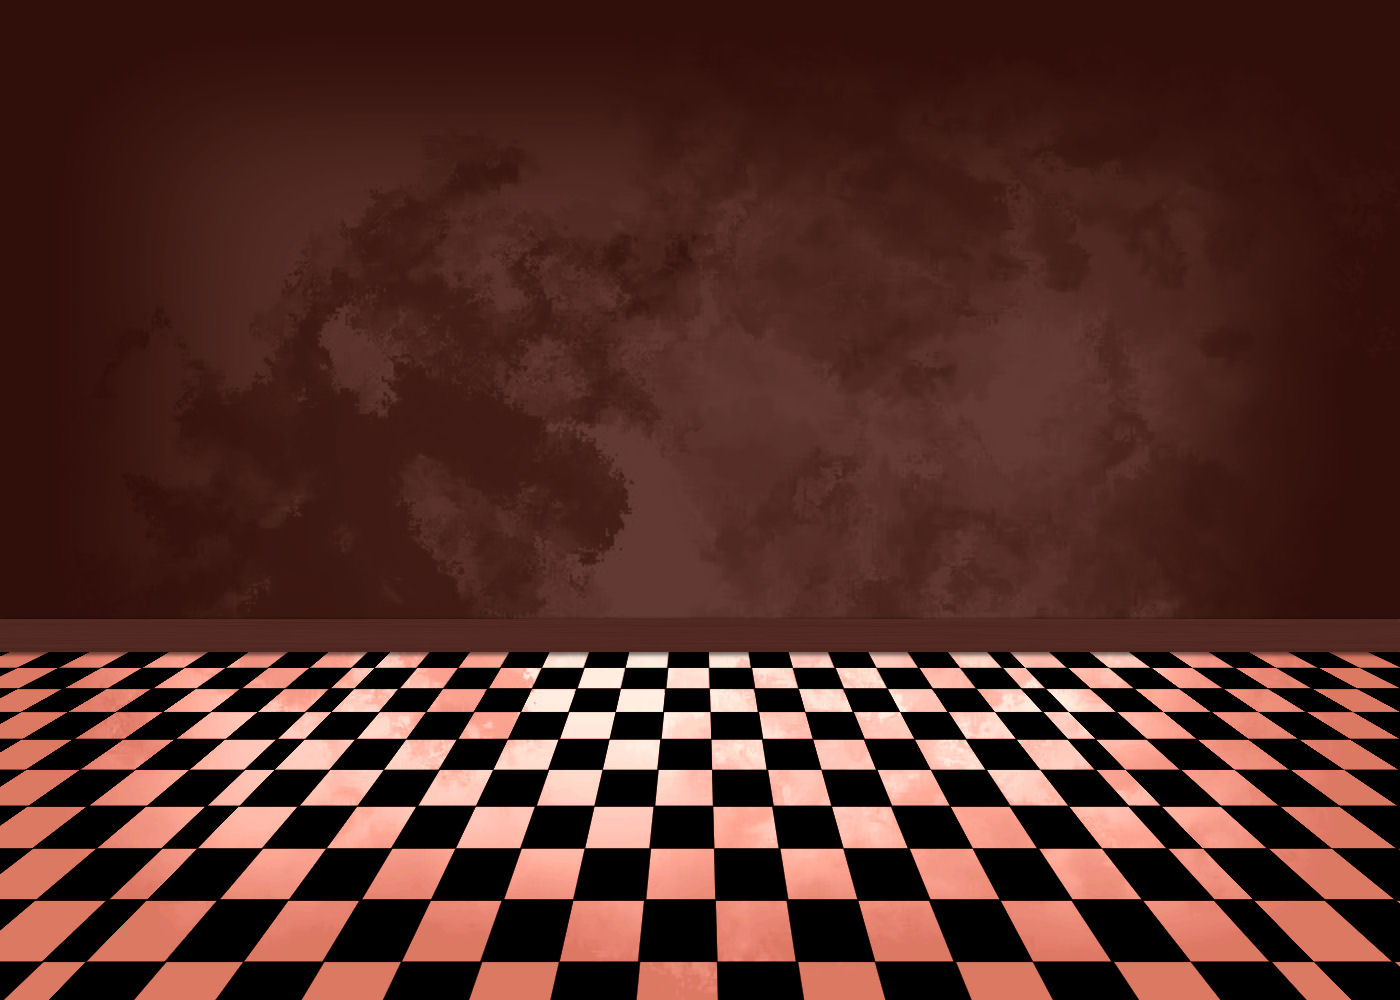 Pin Checker Floor Background Pattern Stock Photo 12609547 ...